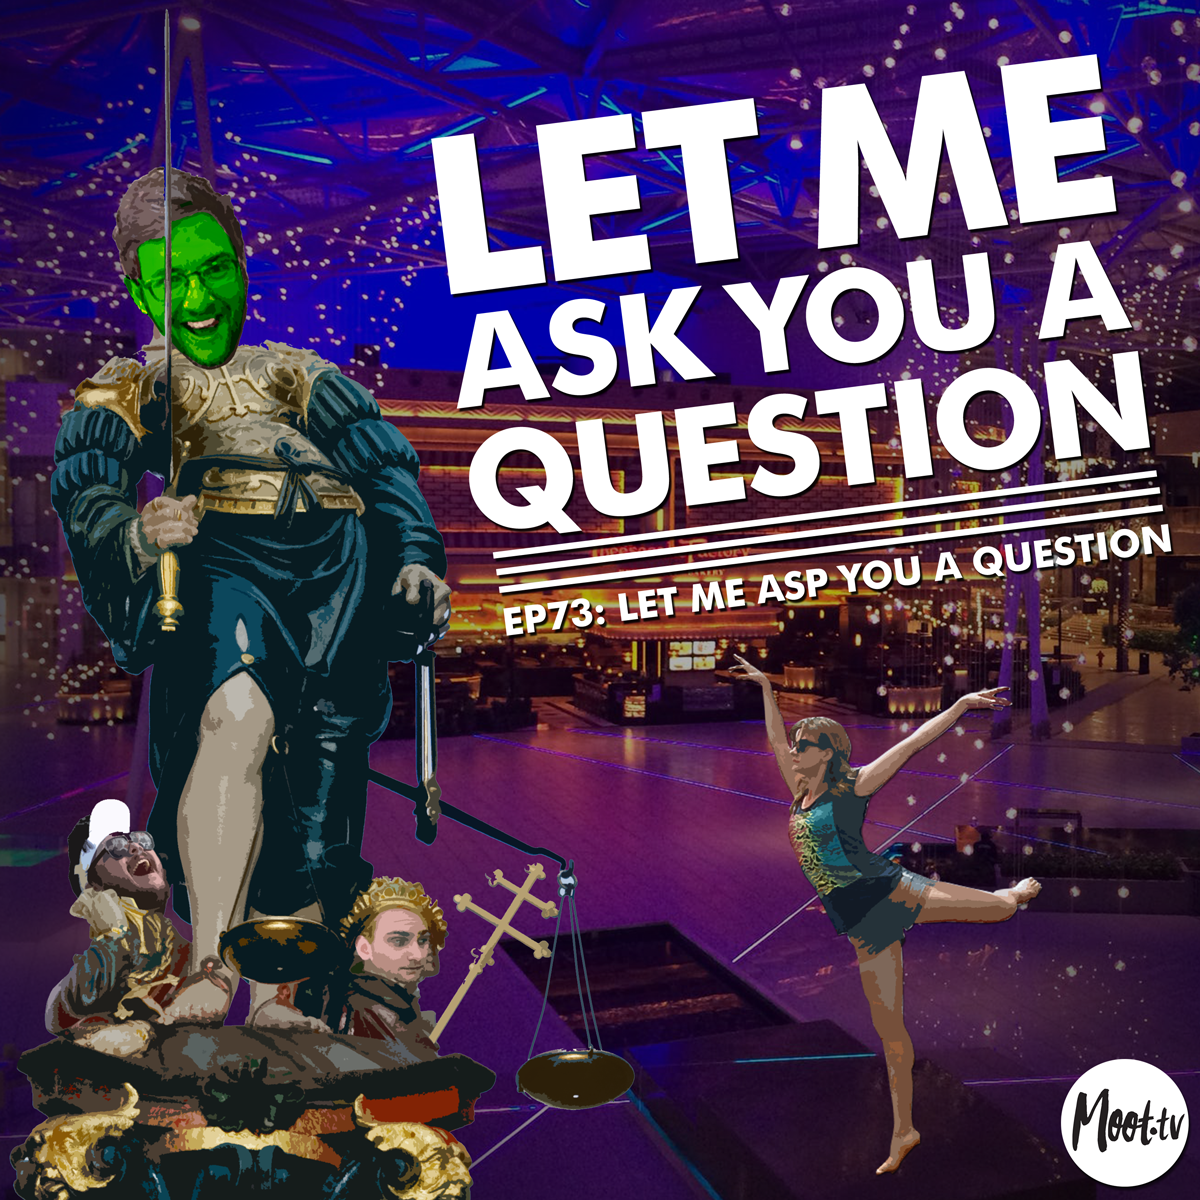 Let Me Ask You A Question Ep73: Let Me Asp You A Question